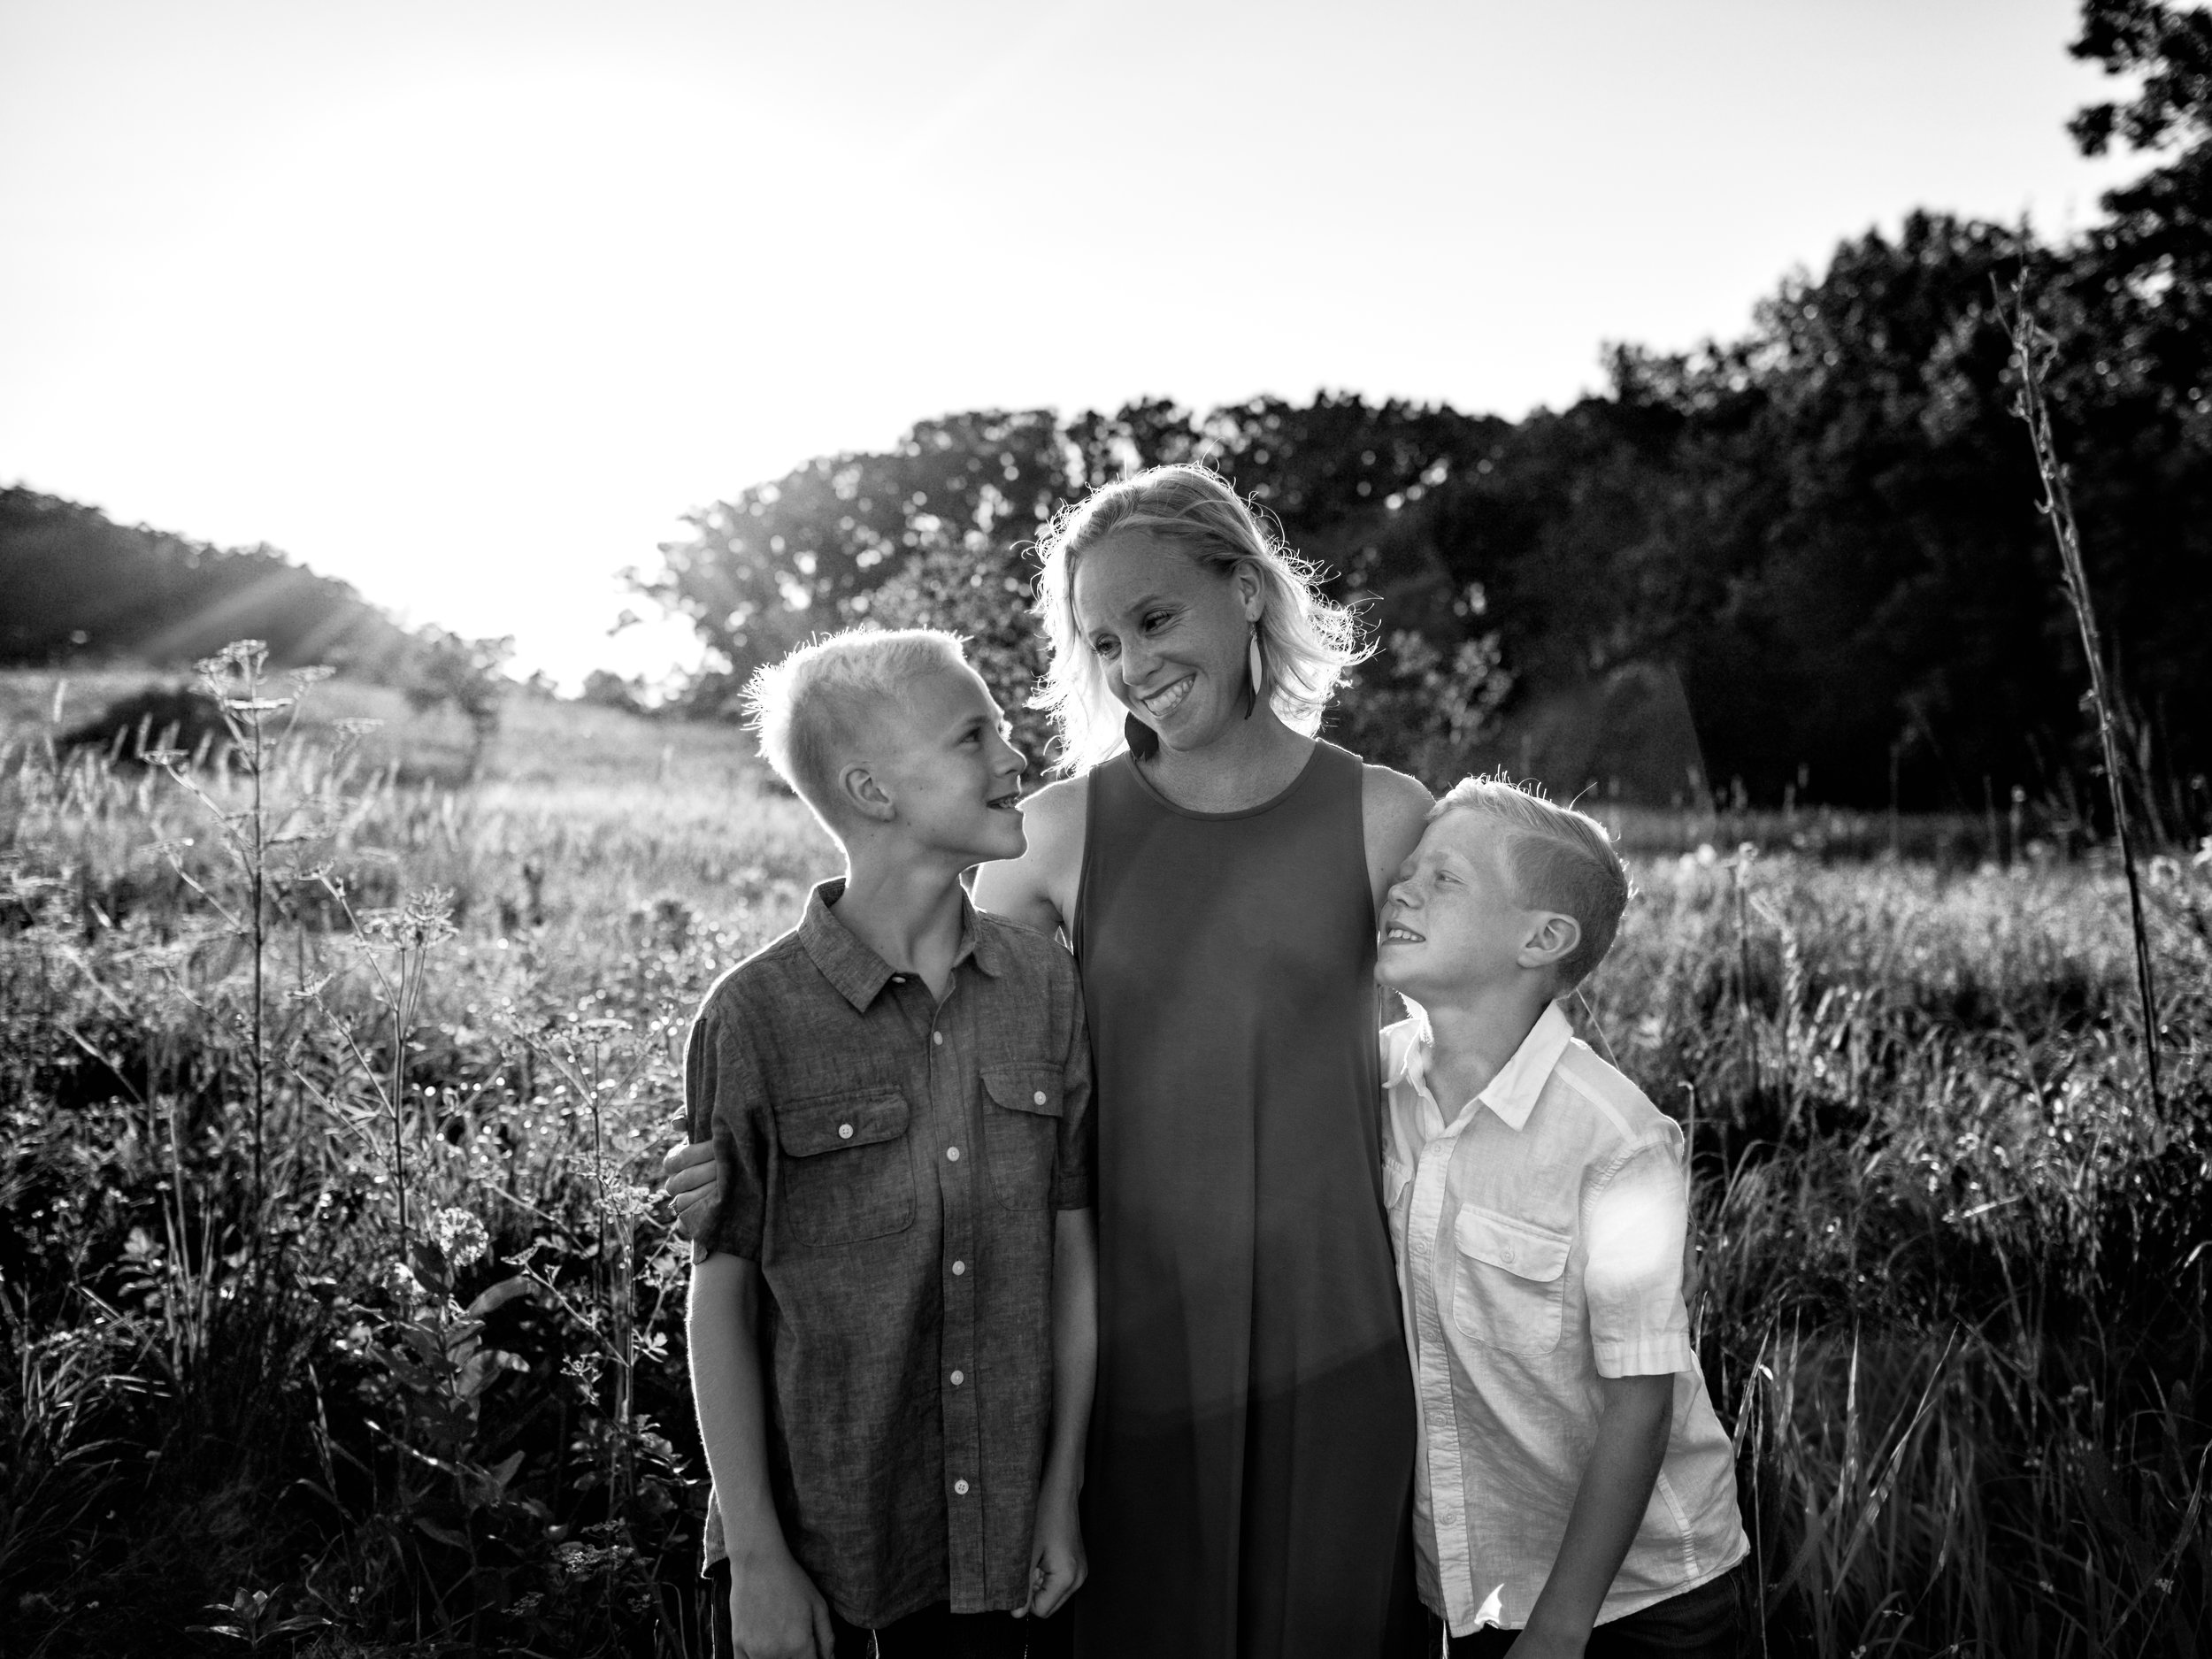 family-photography-austin-mn-minnesota-family-kids-photo-session-albert-lea-mn-rochester-mn-southern-minnesota-photographer-photography-pictures-outdoors